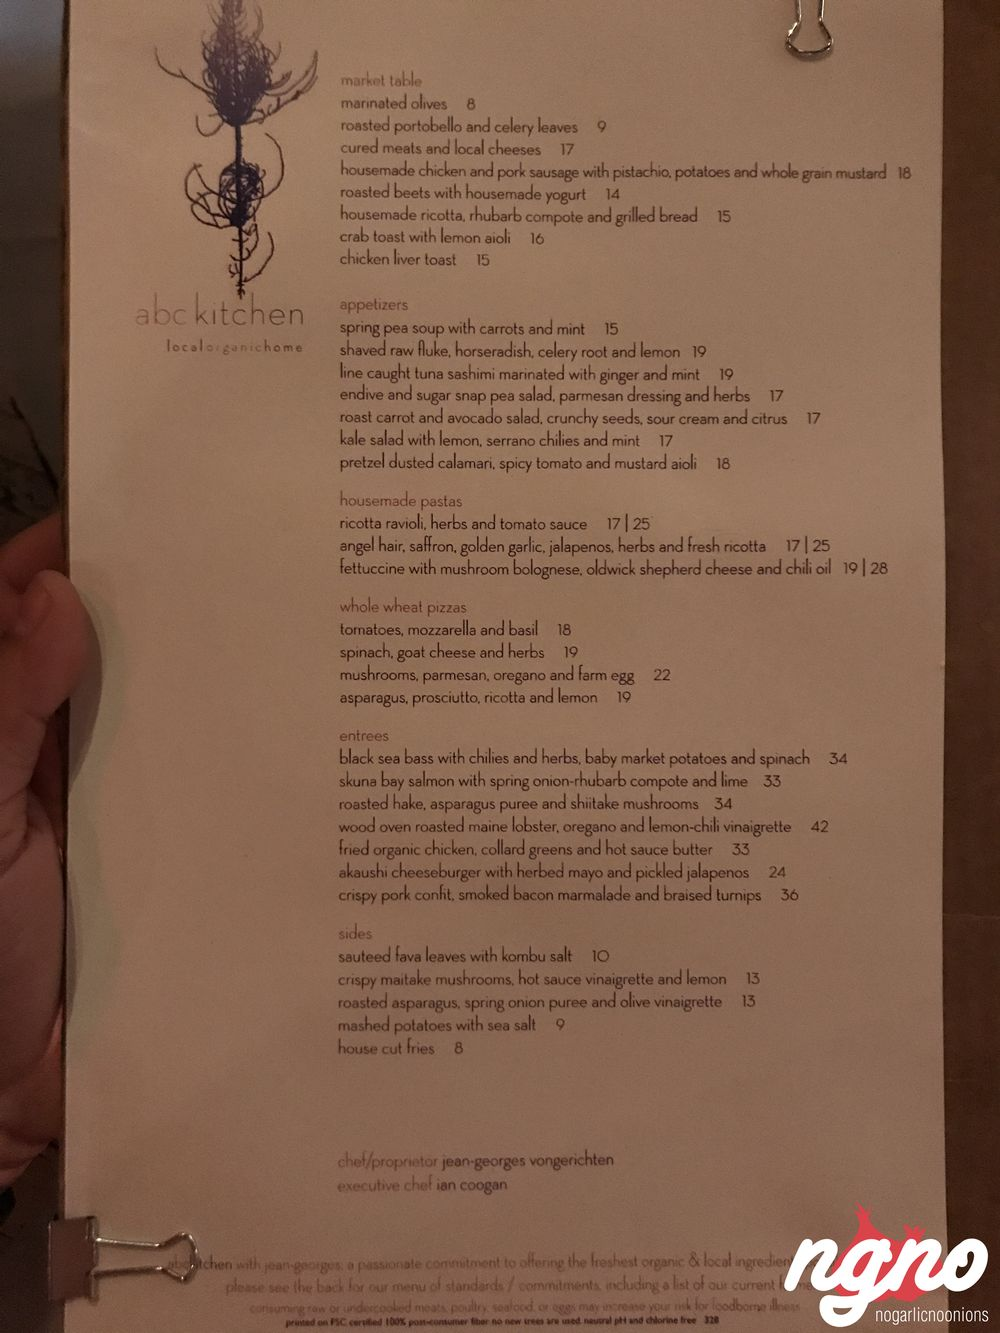 abc kitchen a flawless experience in new york nogarlicnoonions